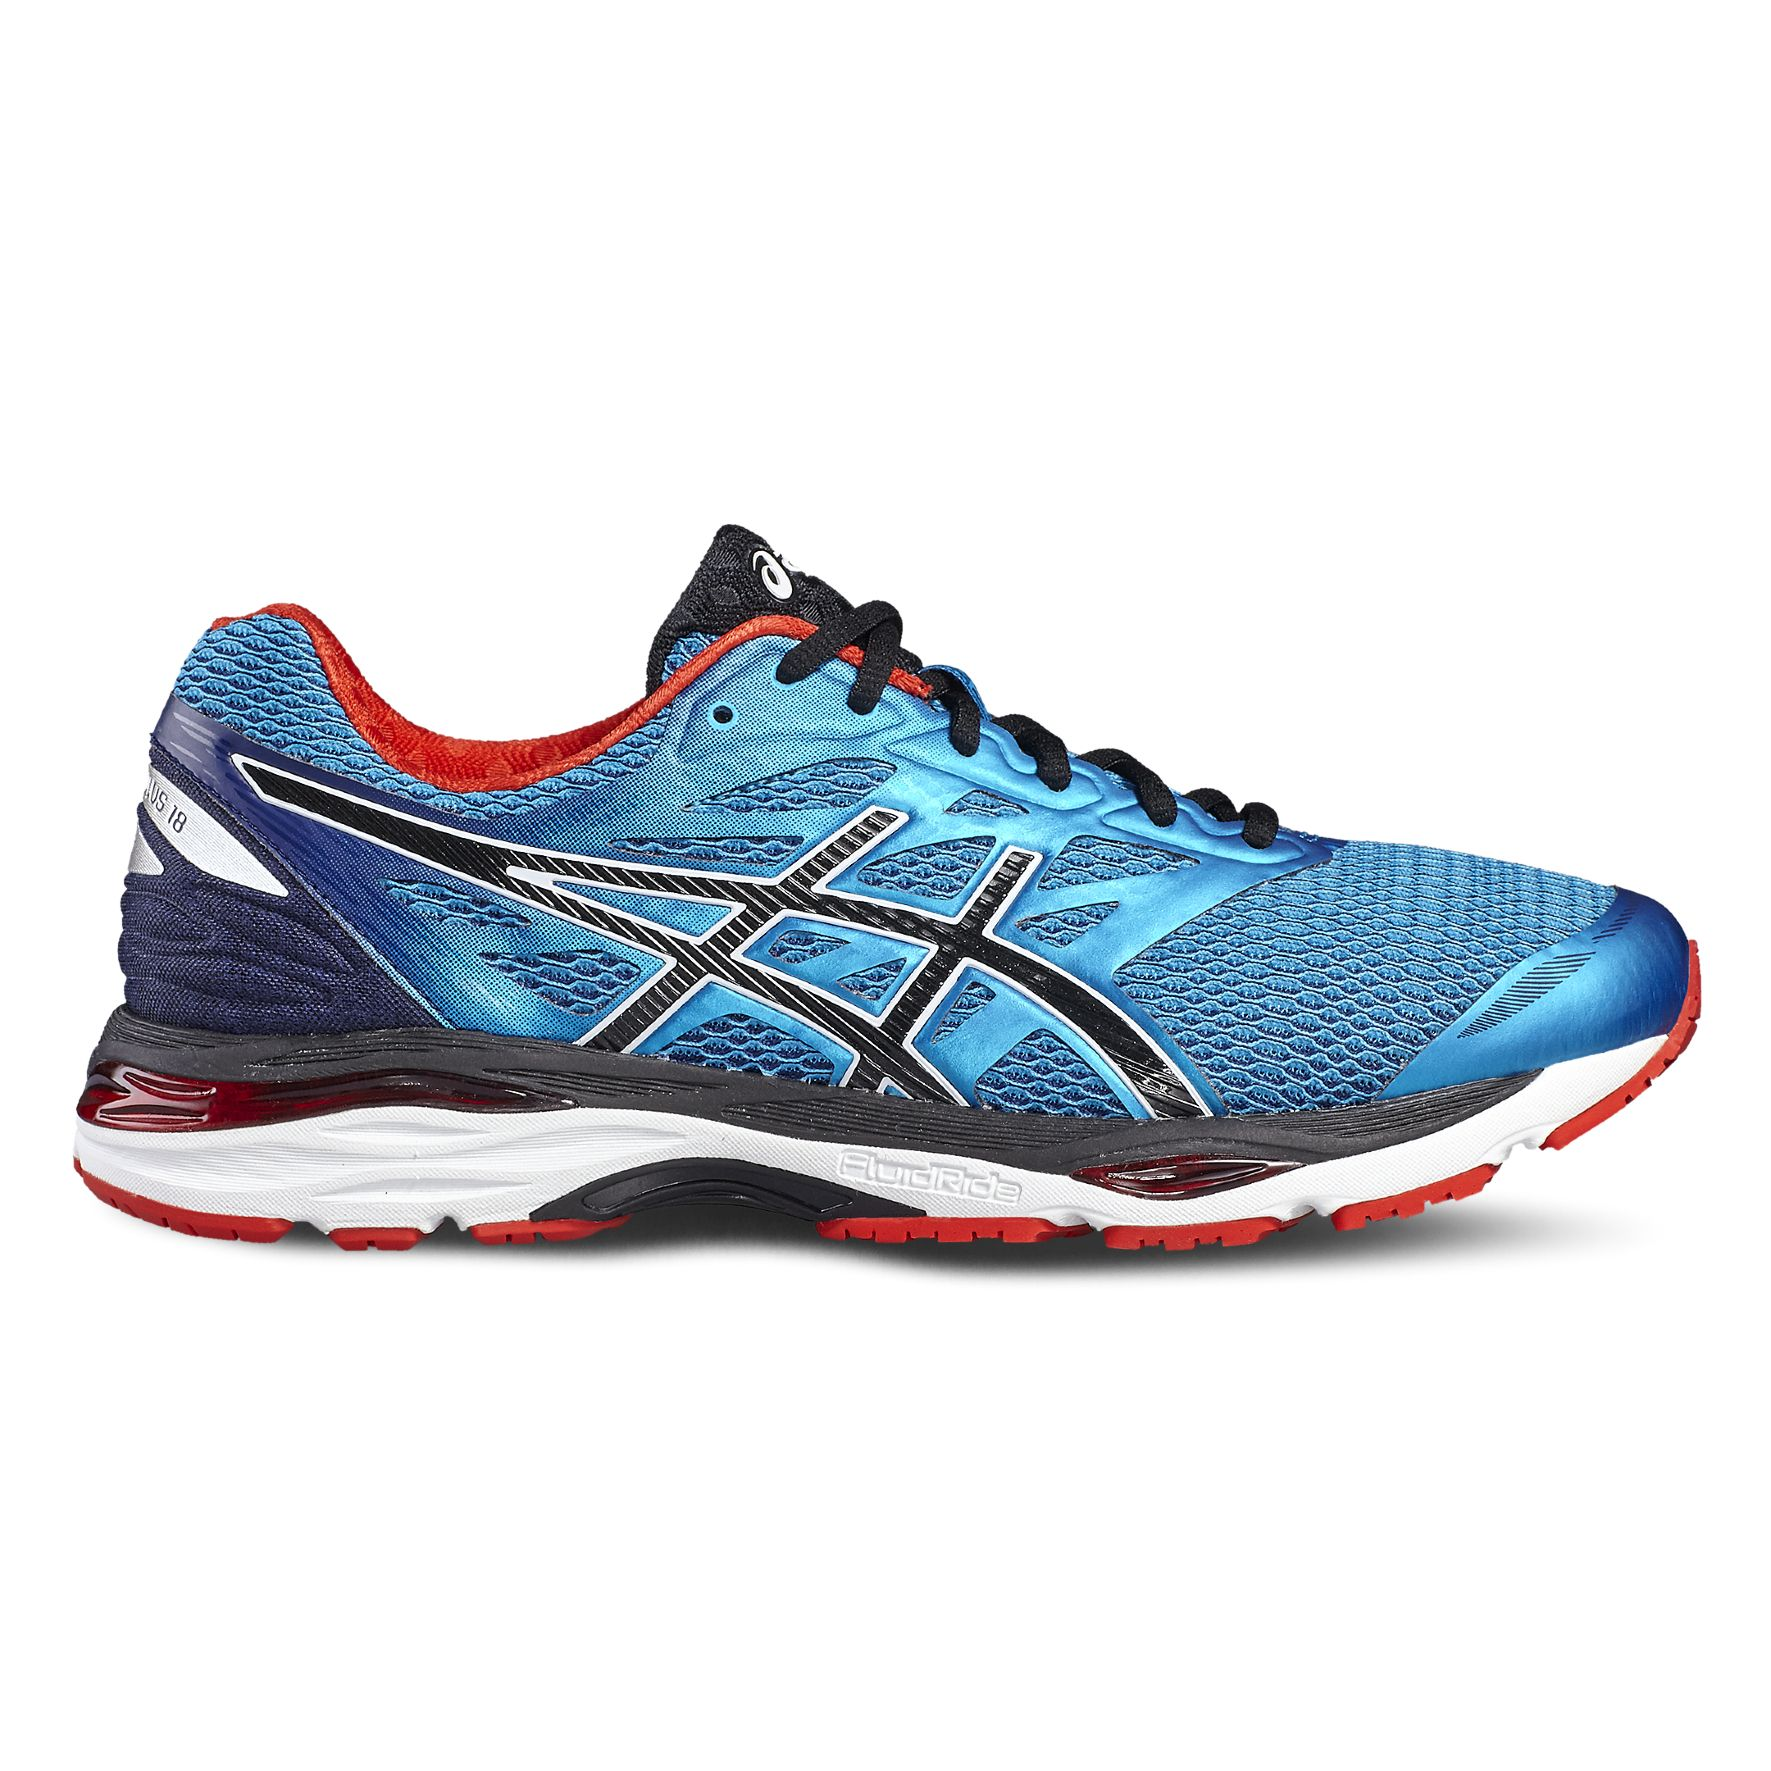 Asics Gel-Cumulus 18 Mens Running Shoes